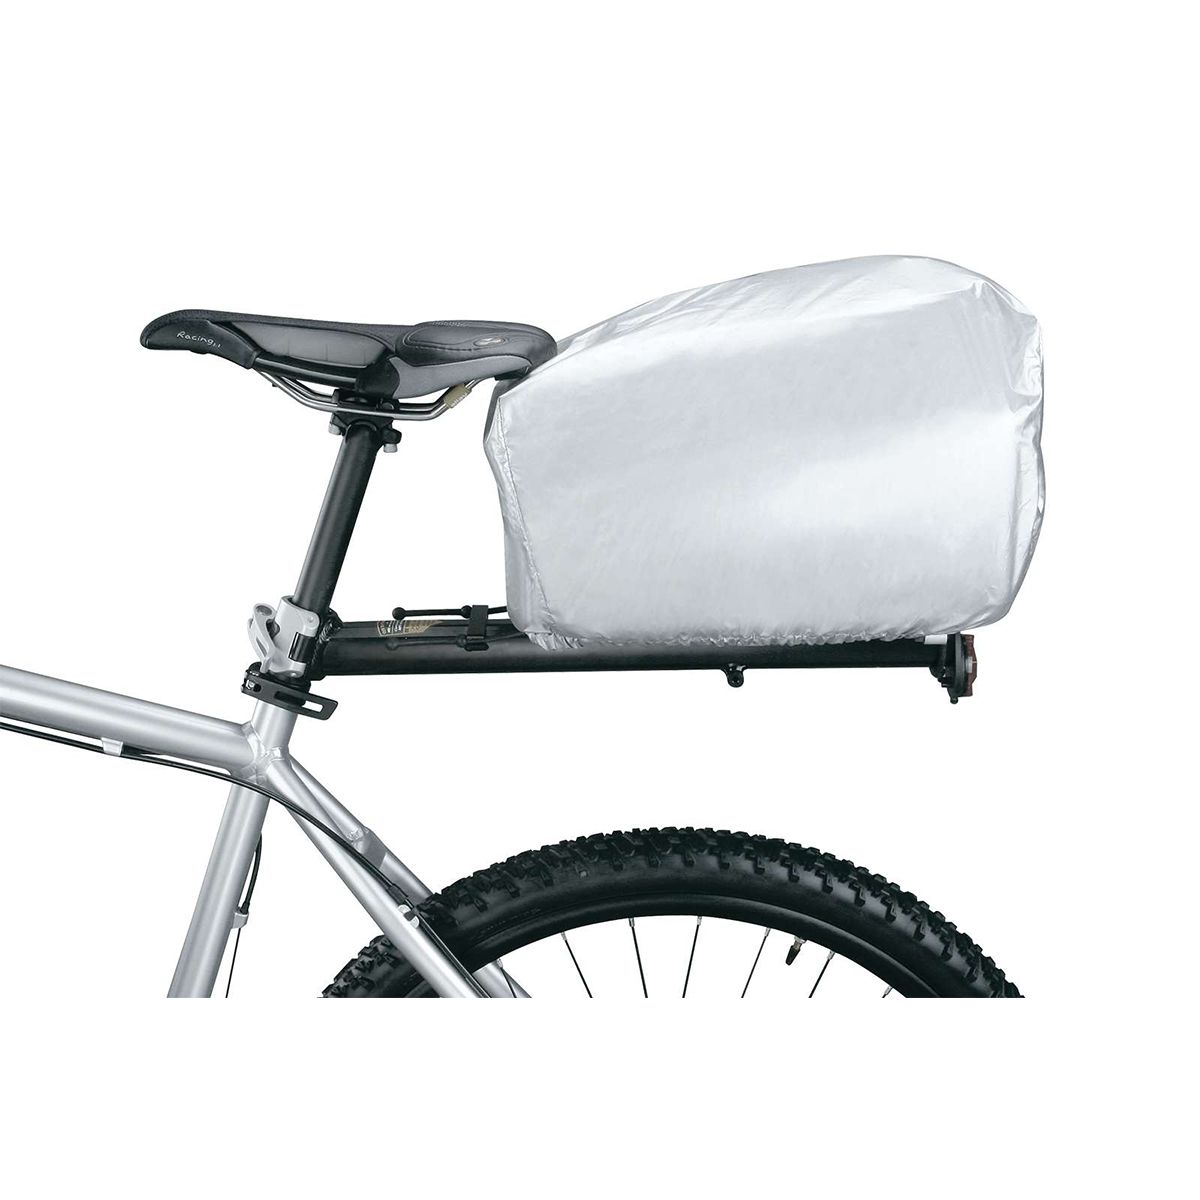 Rain cover for Topeak TrunkBags